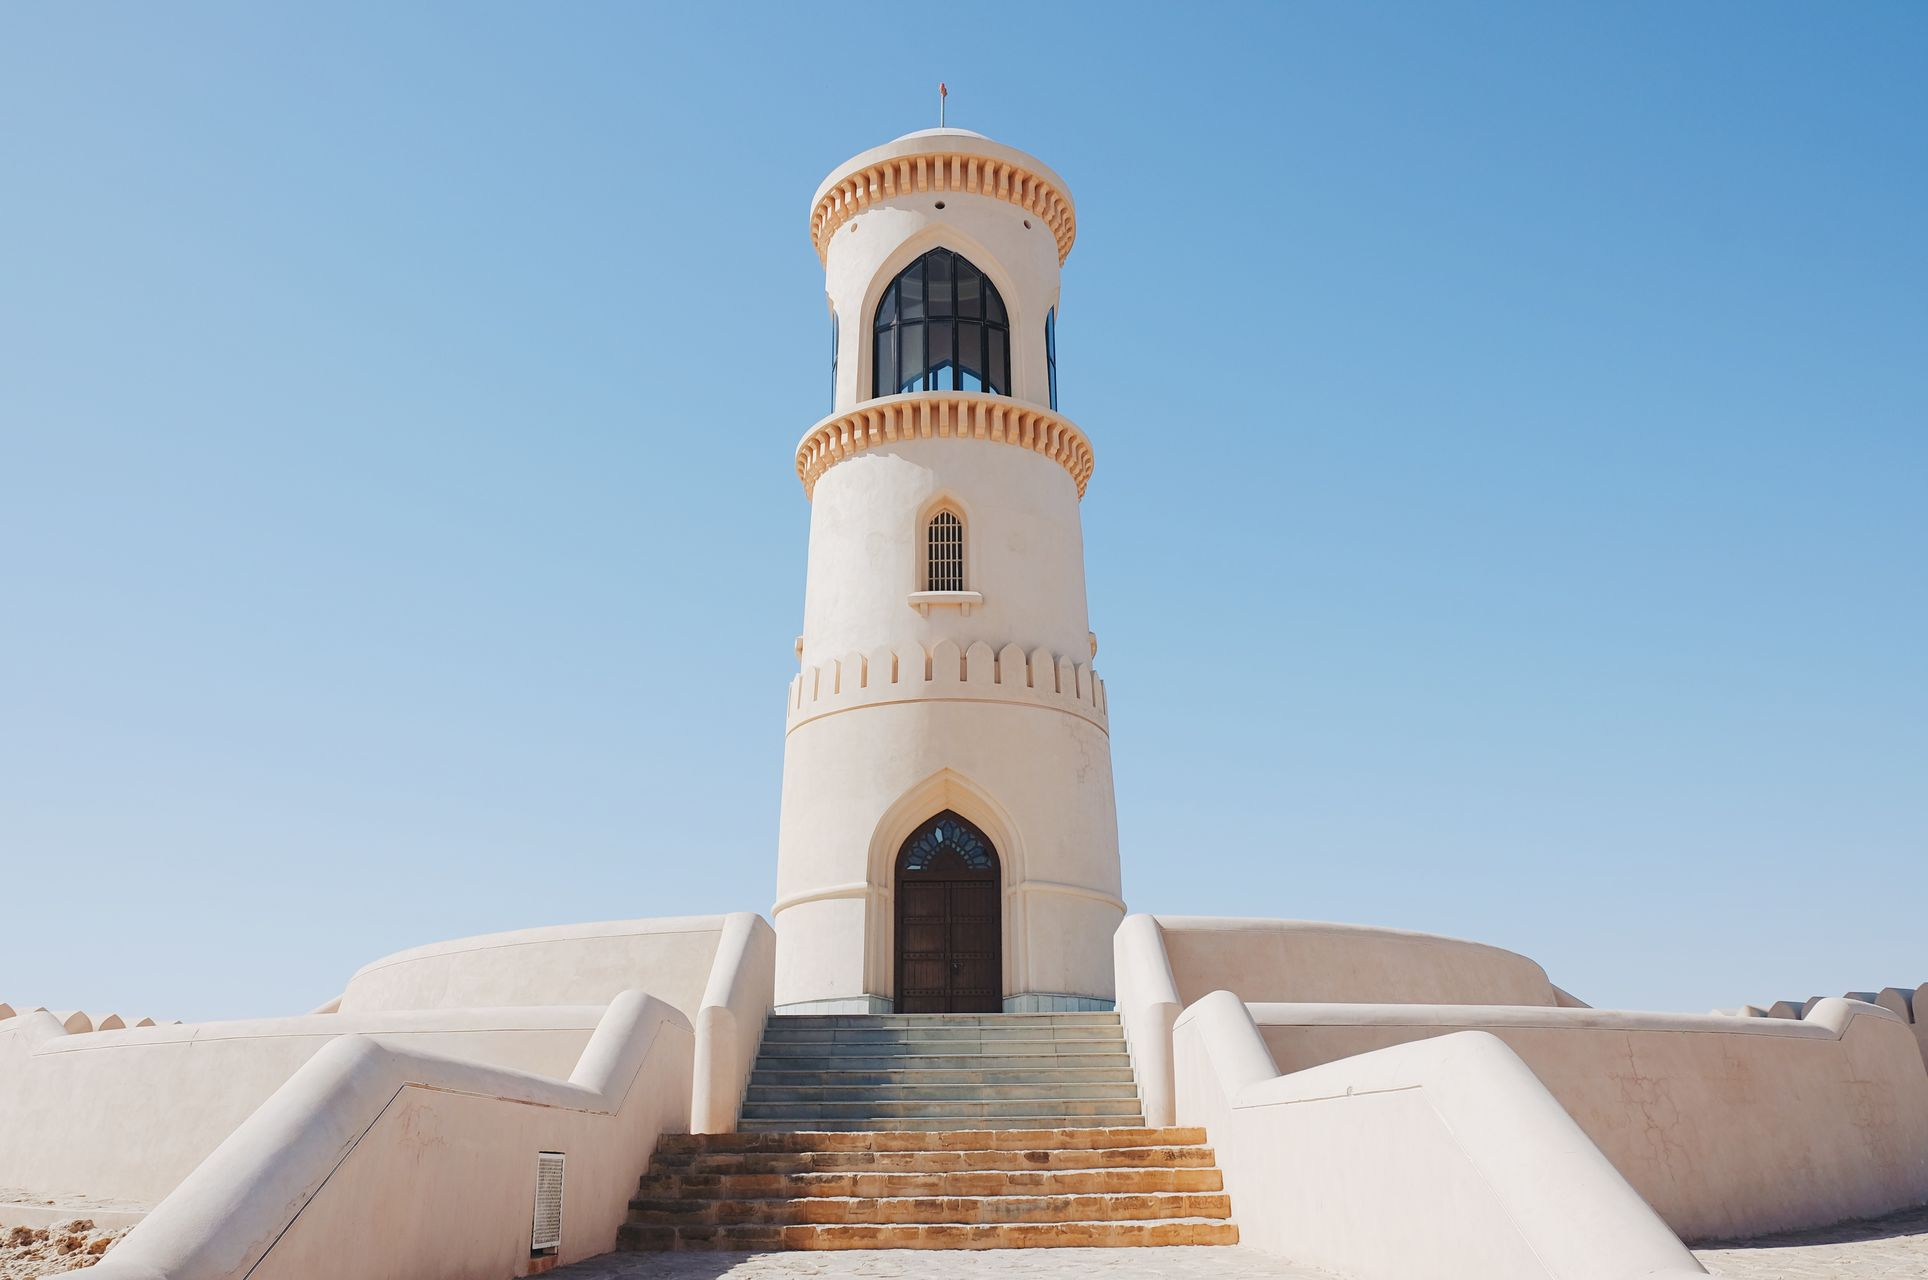 Lighthouse Oman Travel View Architecture blue building building exterior built structure Clear sky day history Low angle view no people oman_photography outdoor outdoors scenics sky summer tourism tower travel destinations Şūr